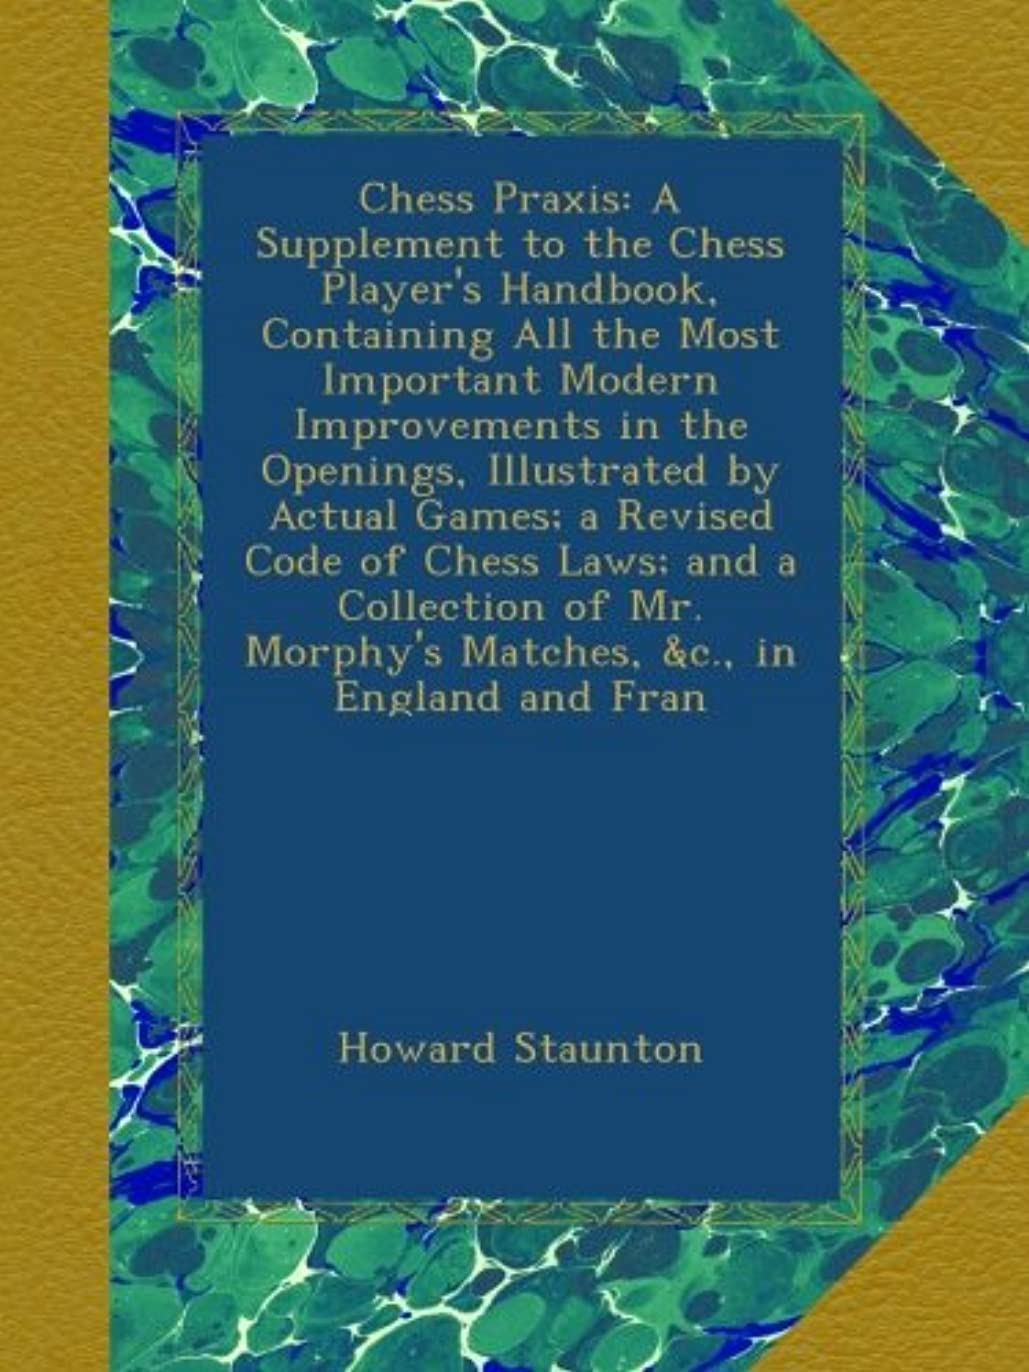 浸す寄付する粒Chess Praxis: A Supplement to the Chess Player's Handbook, Containing All the Most Important Modern Improvements in the Openings, Illustrated by Actual Games; a Revised Code of Chess Laws; and a Collection of Mr. Morphy's Matches, &c., in England and Fran